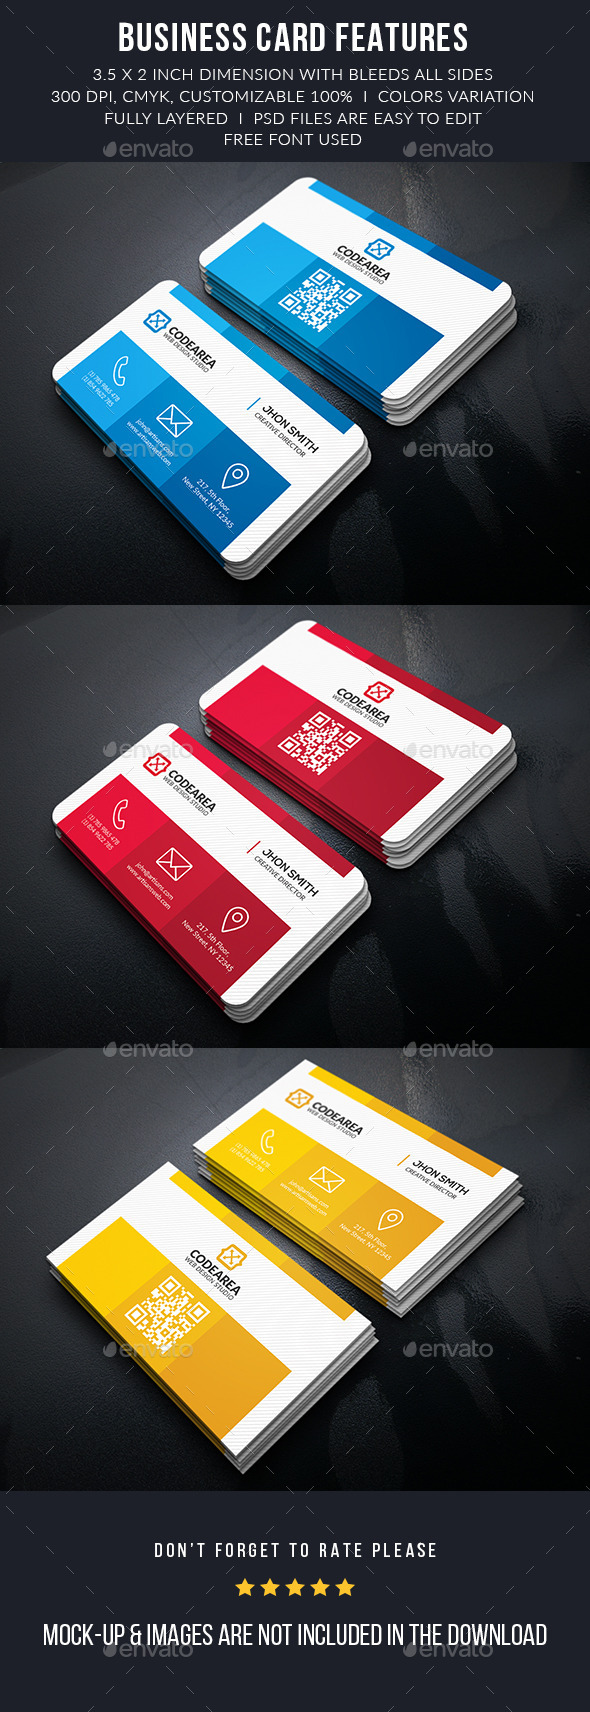 Color Shade Business Card